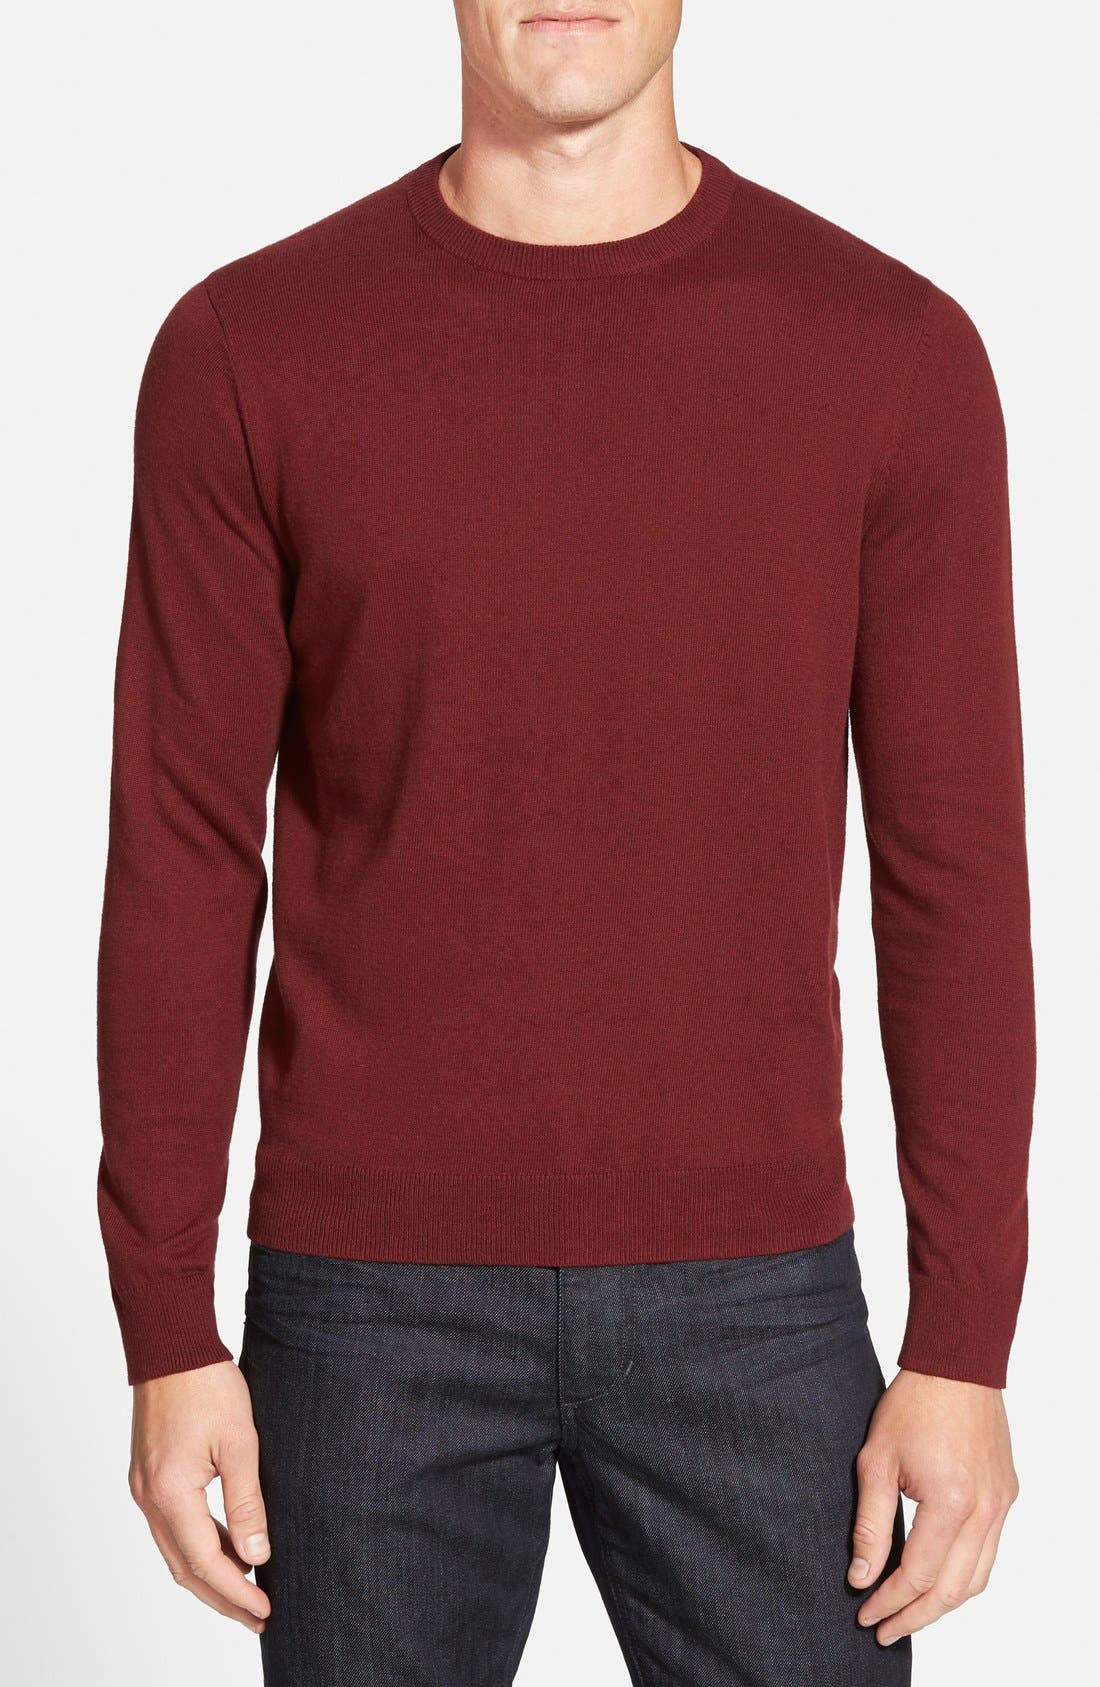 Nordstrom Men's Shop Cotton & Cashmere Crewneck Sweater (Regular & Tall)